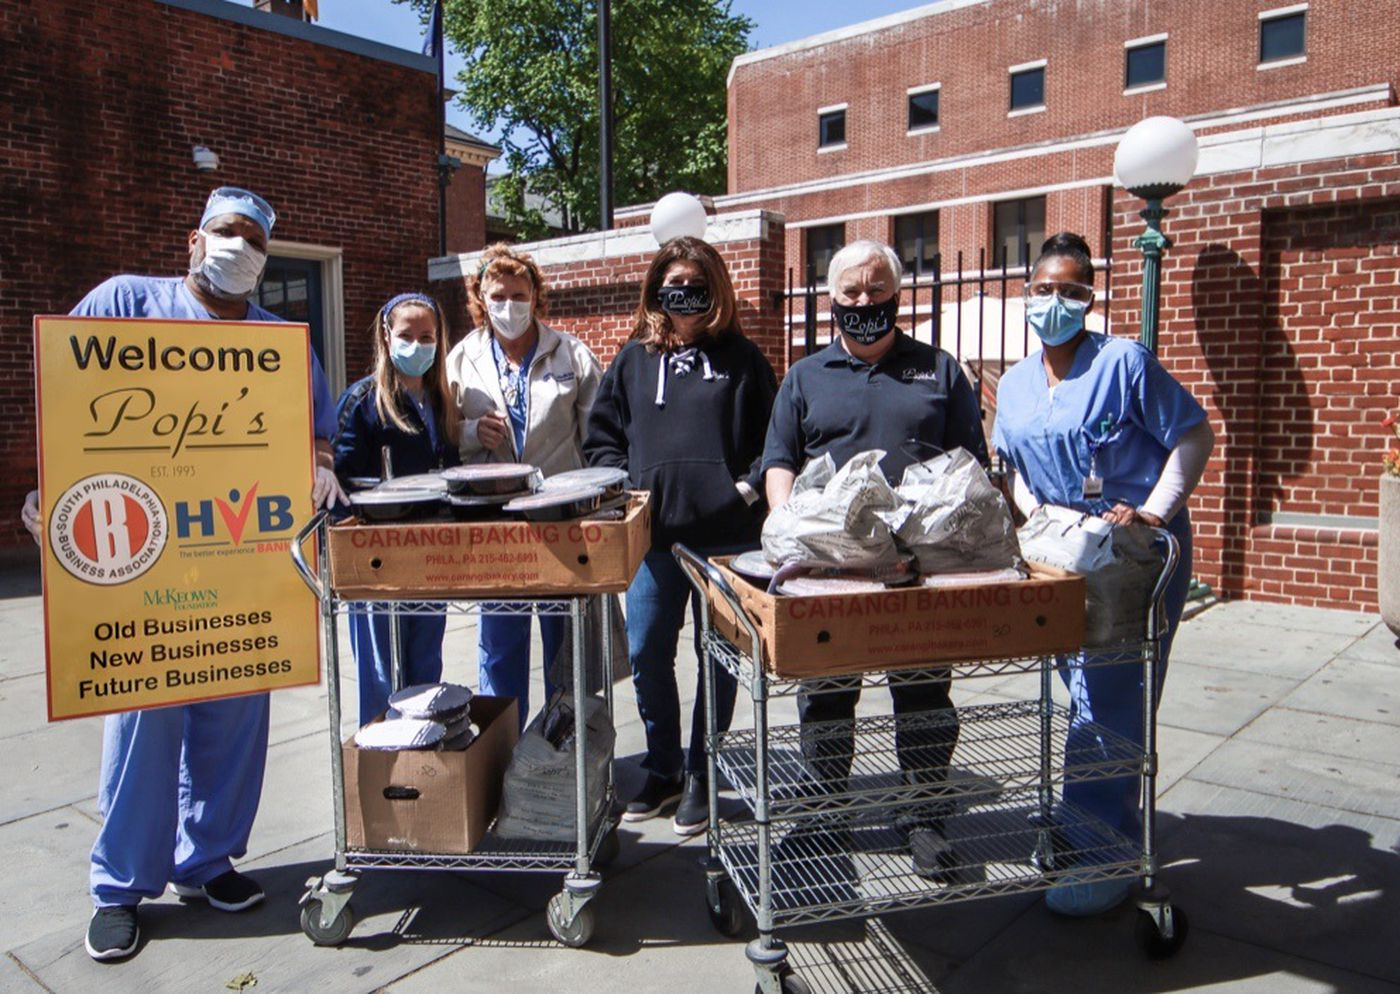 Popi's Restaurant owner Gina Rucci, third from left, delivers meals to customers during coronavirus.